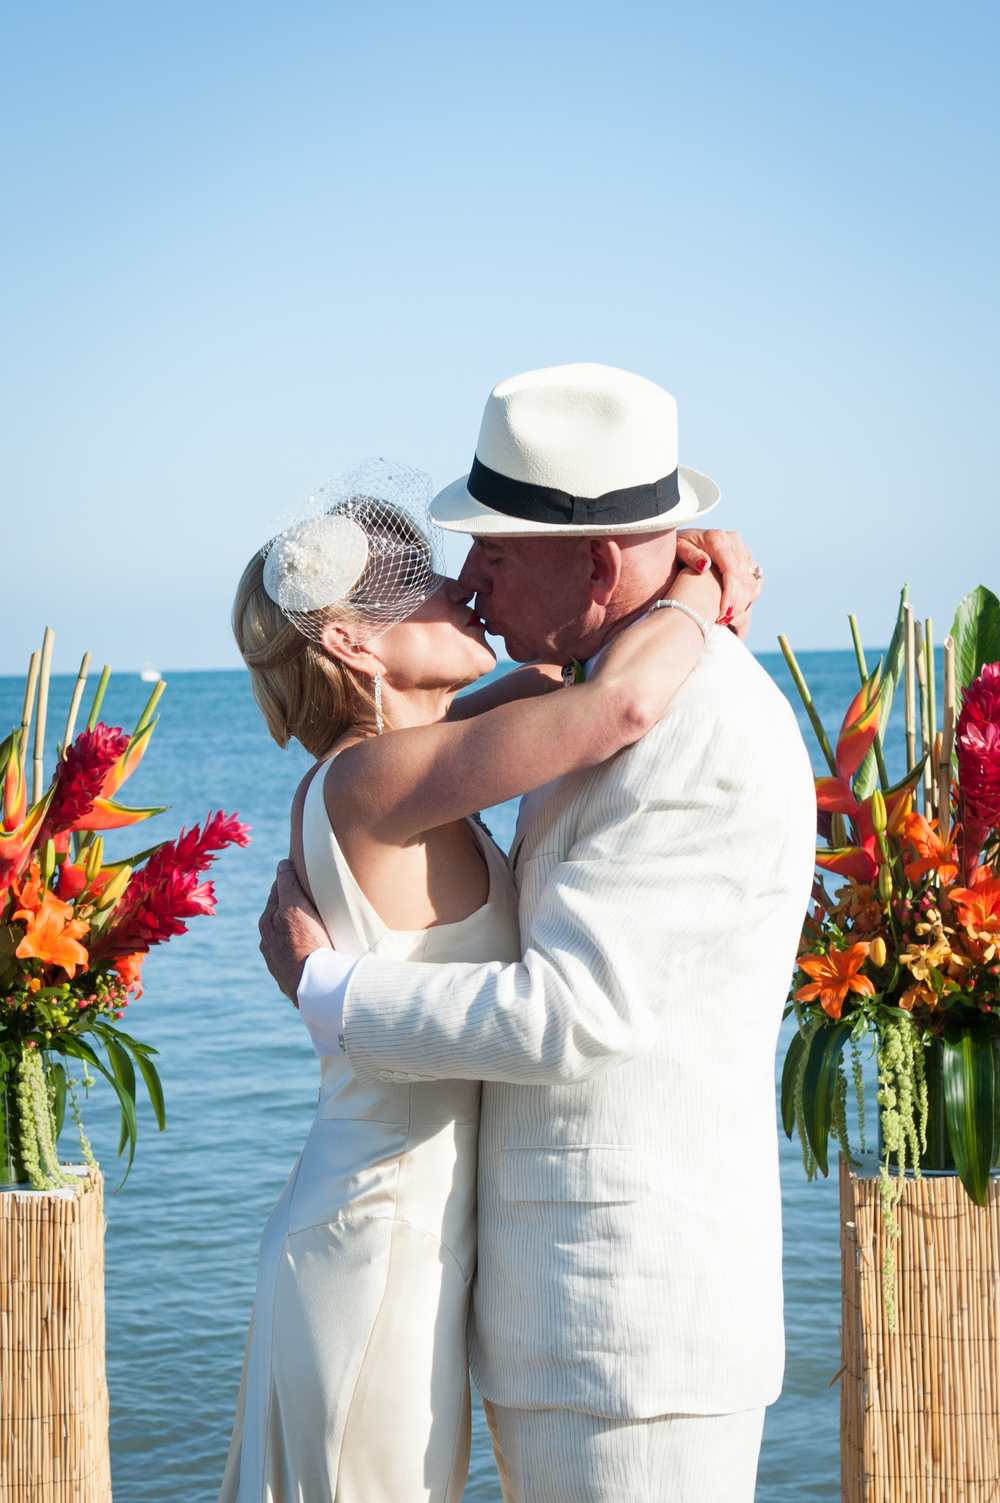 Lynn & Phil {Real Wedding} | Just Save the Date | Photo Credit: MEC Images